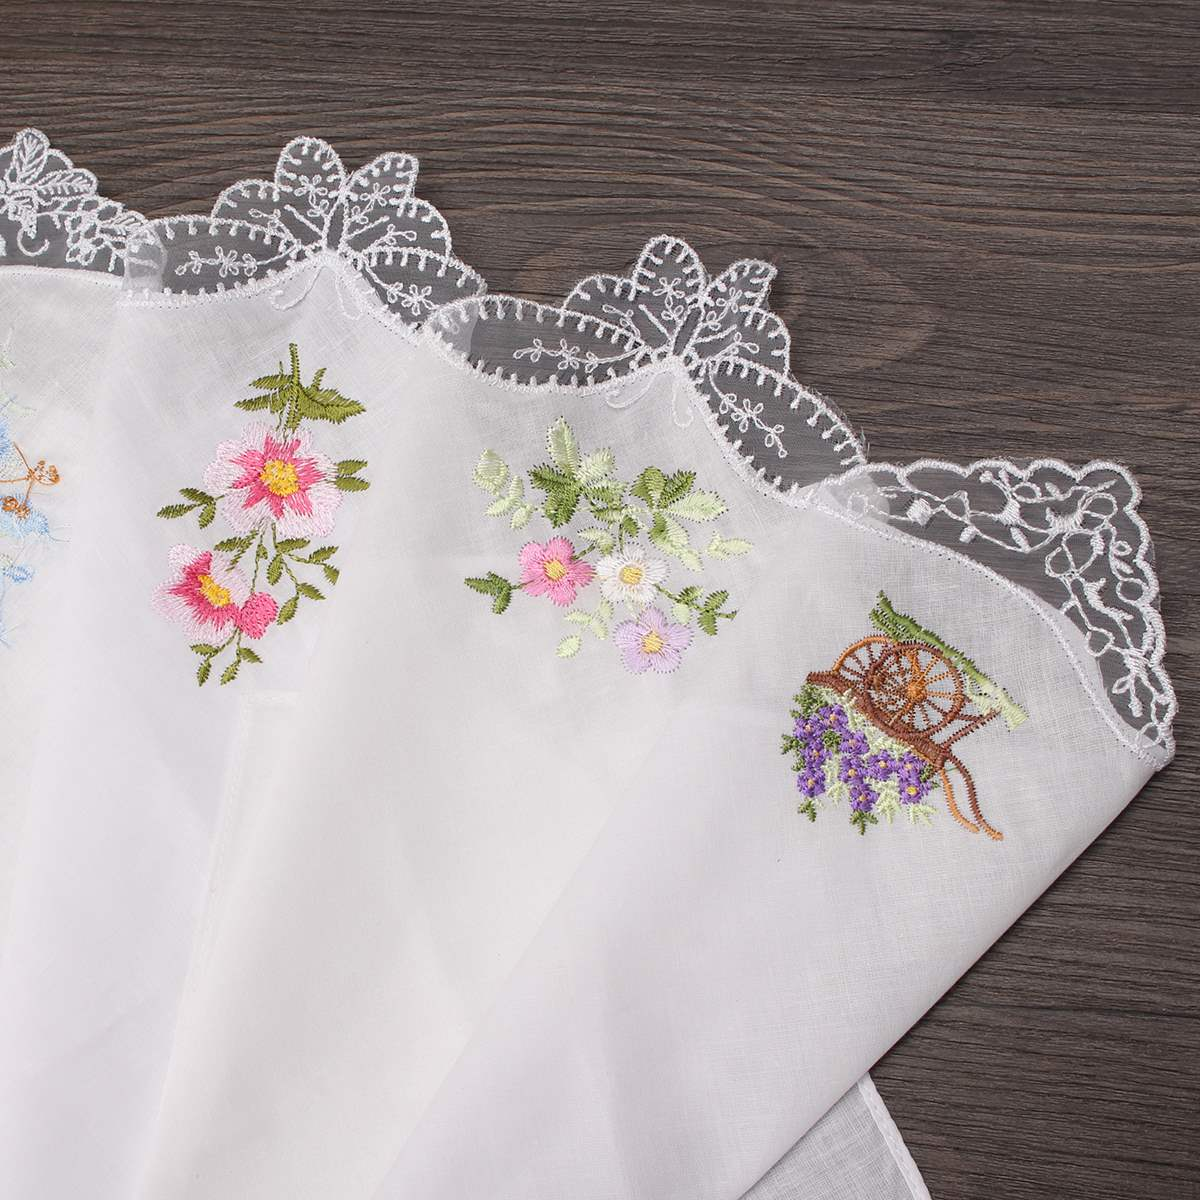 White with Flower Embroideries Pack of 6 Assorted Colours Ladies Handkerchiefs